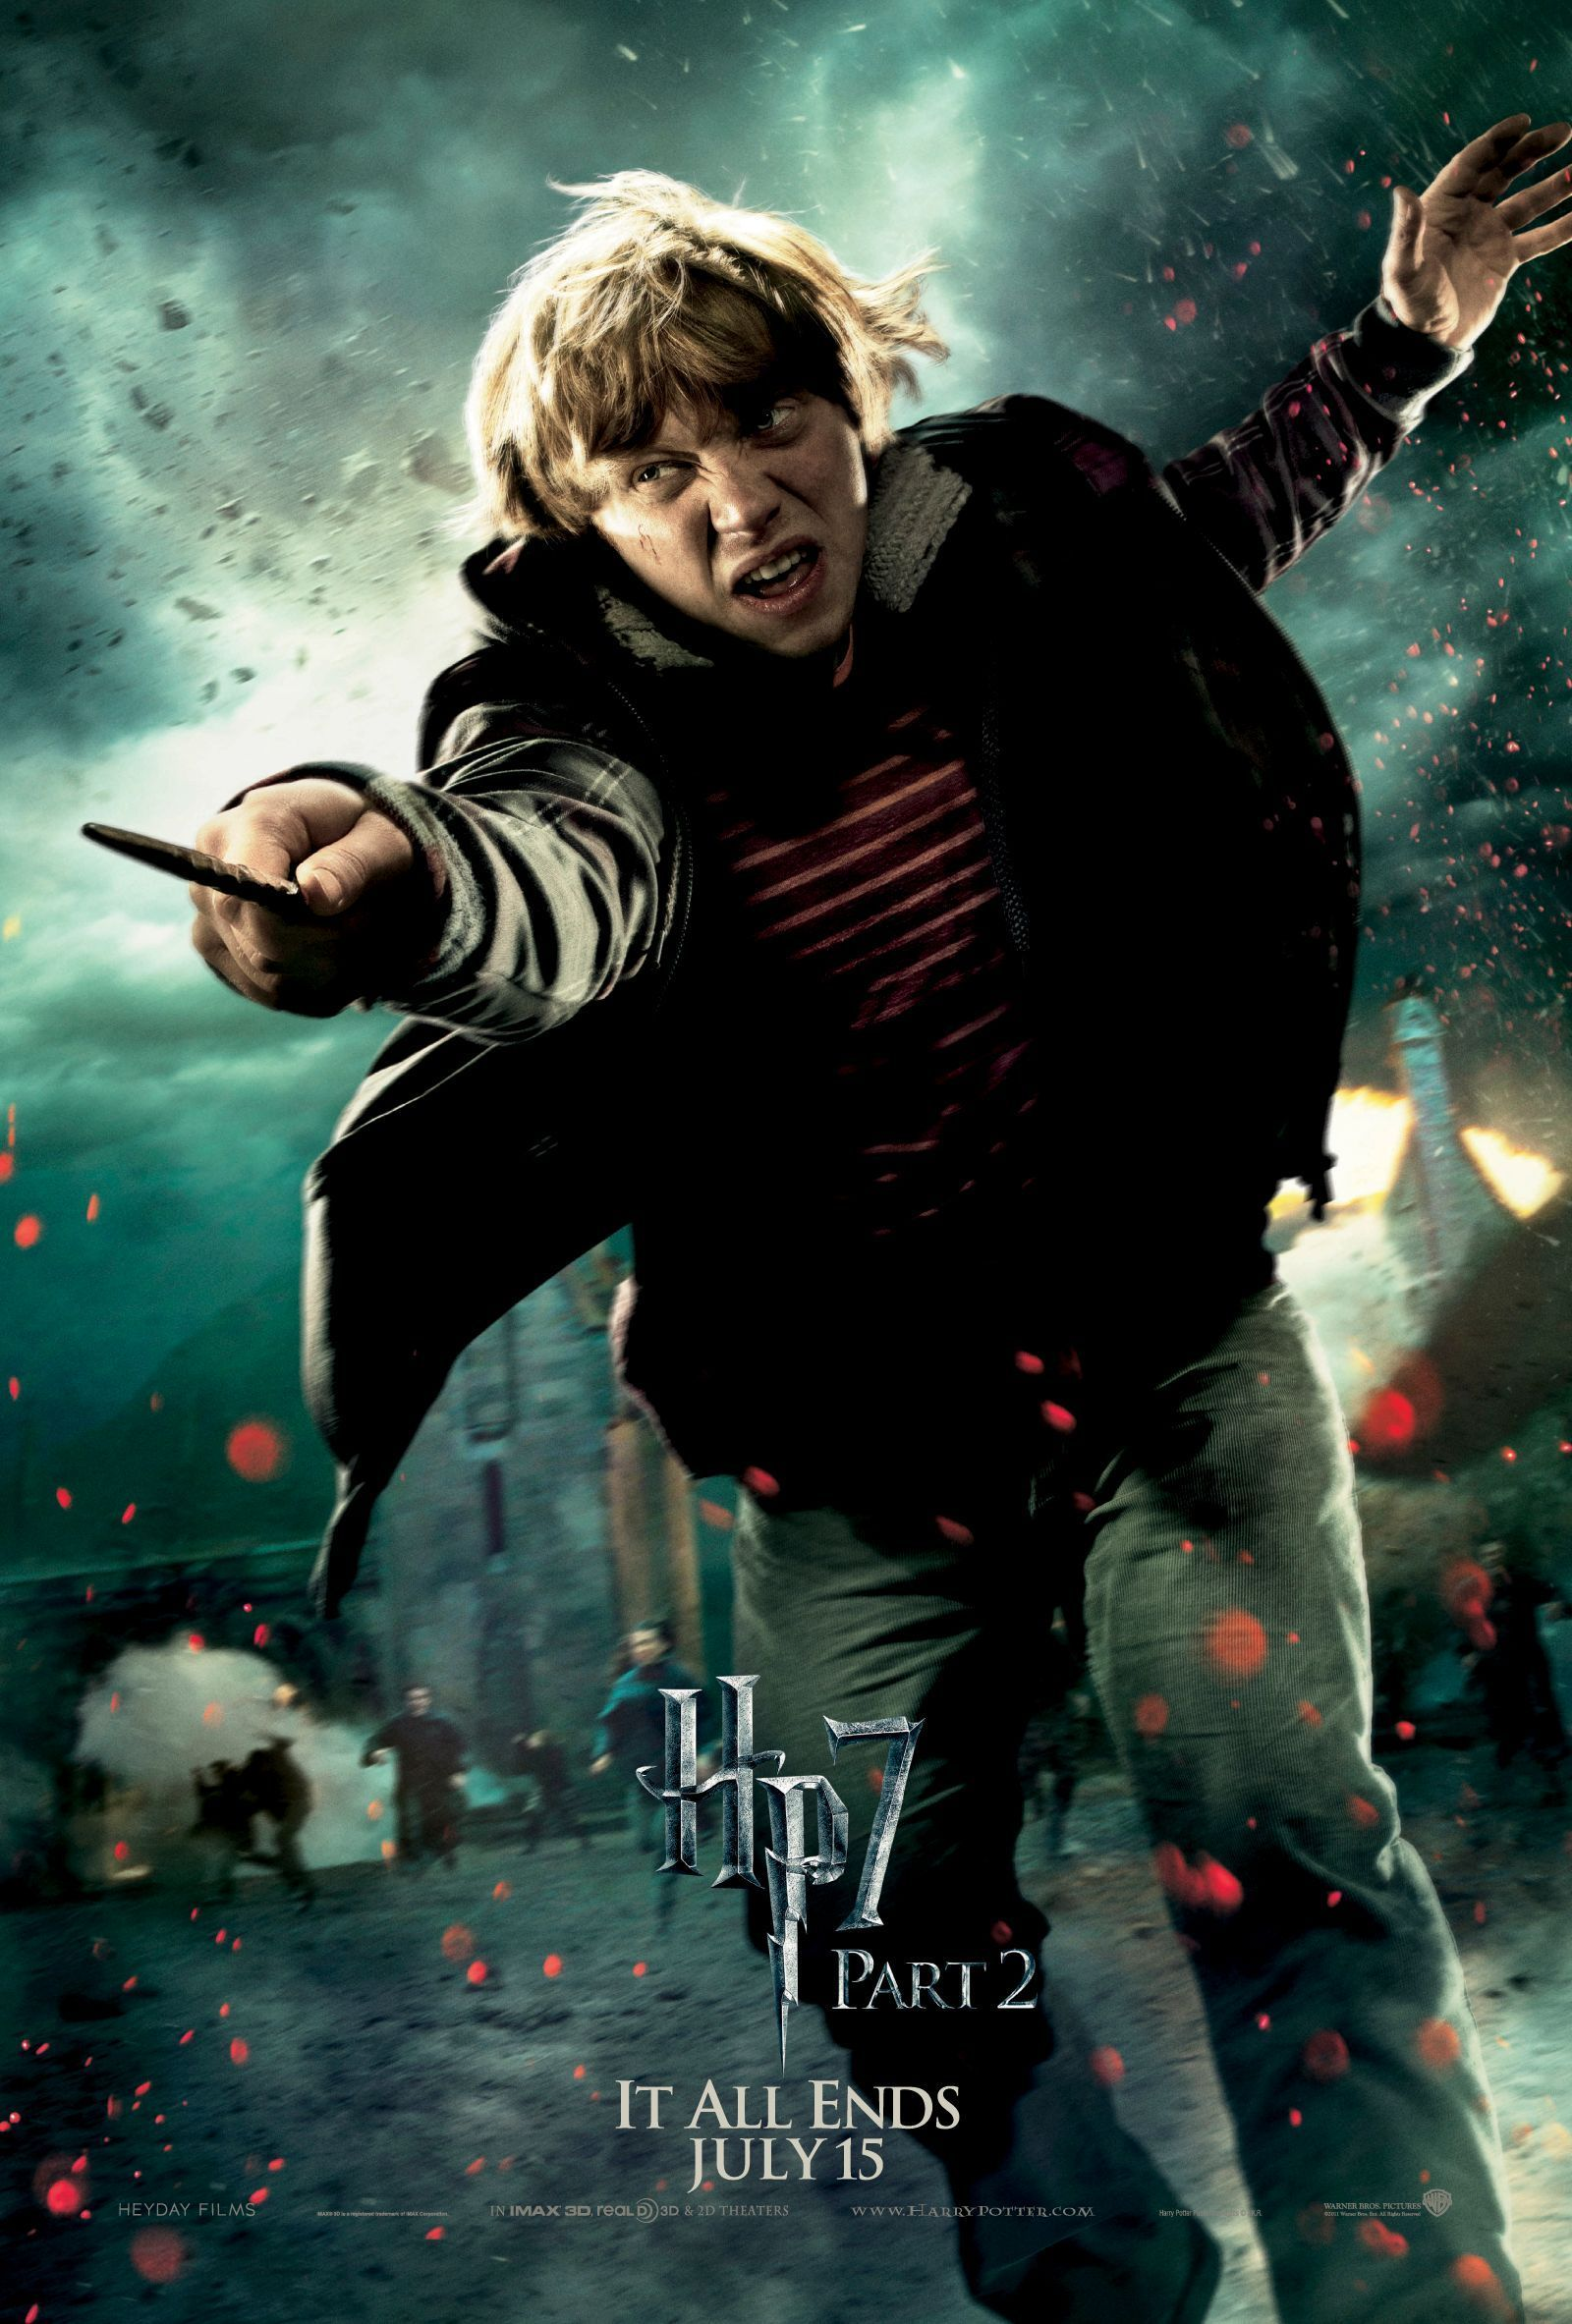 Deathly Hallows Part 2 Action Poster:  Ron Weasley [HQ]